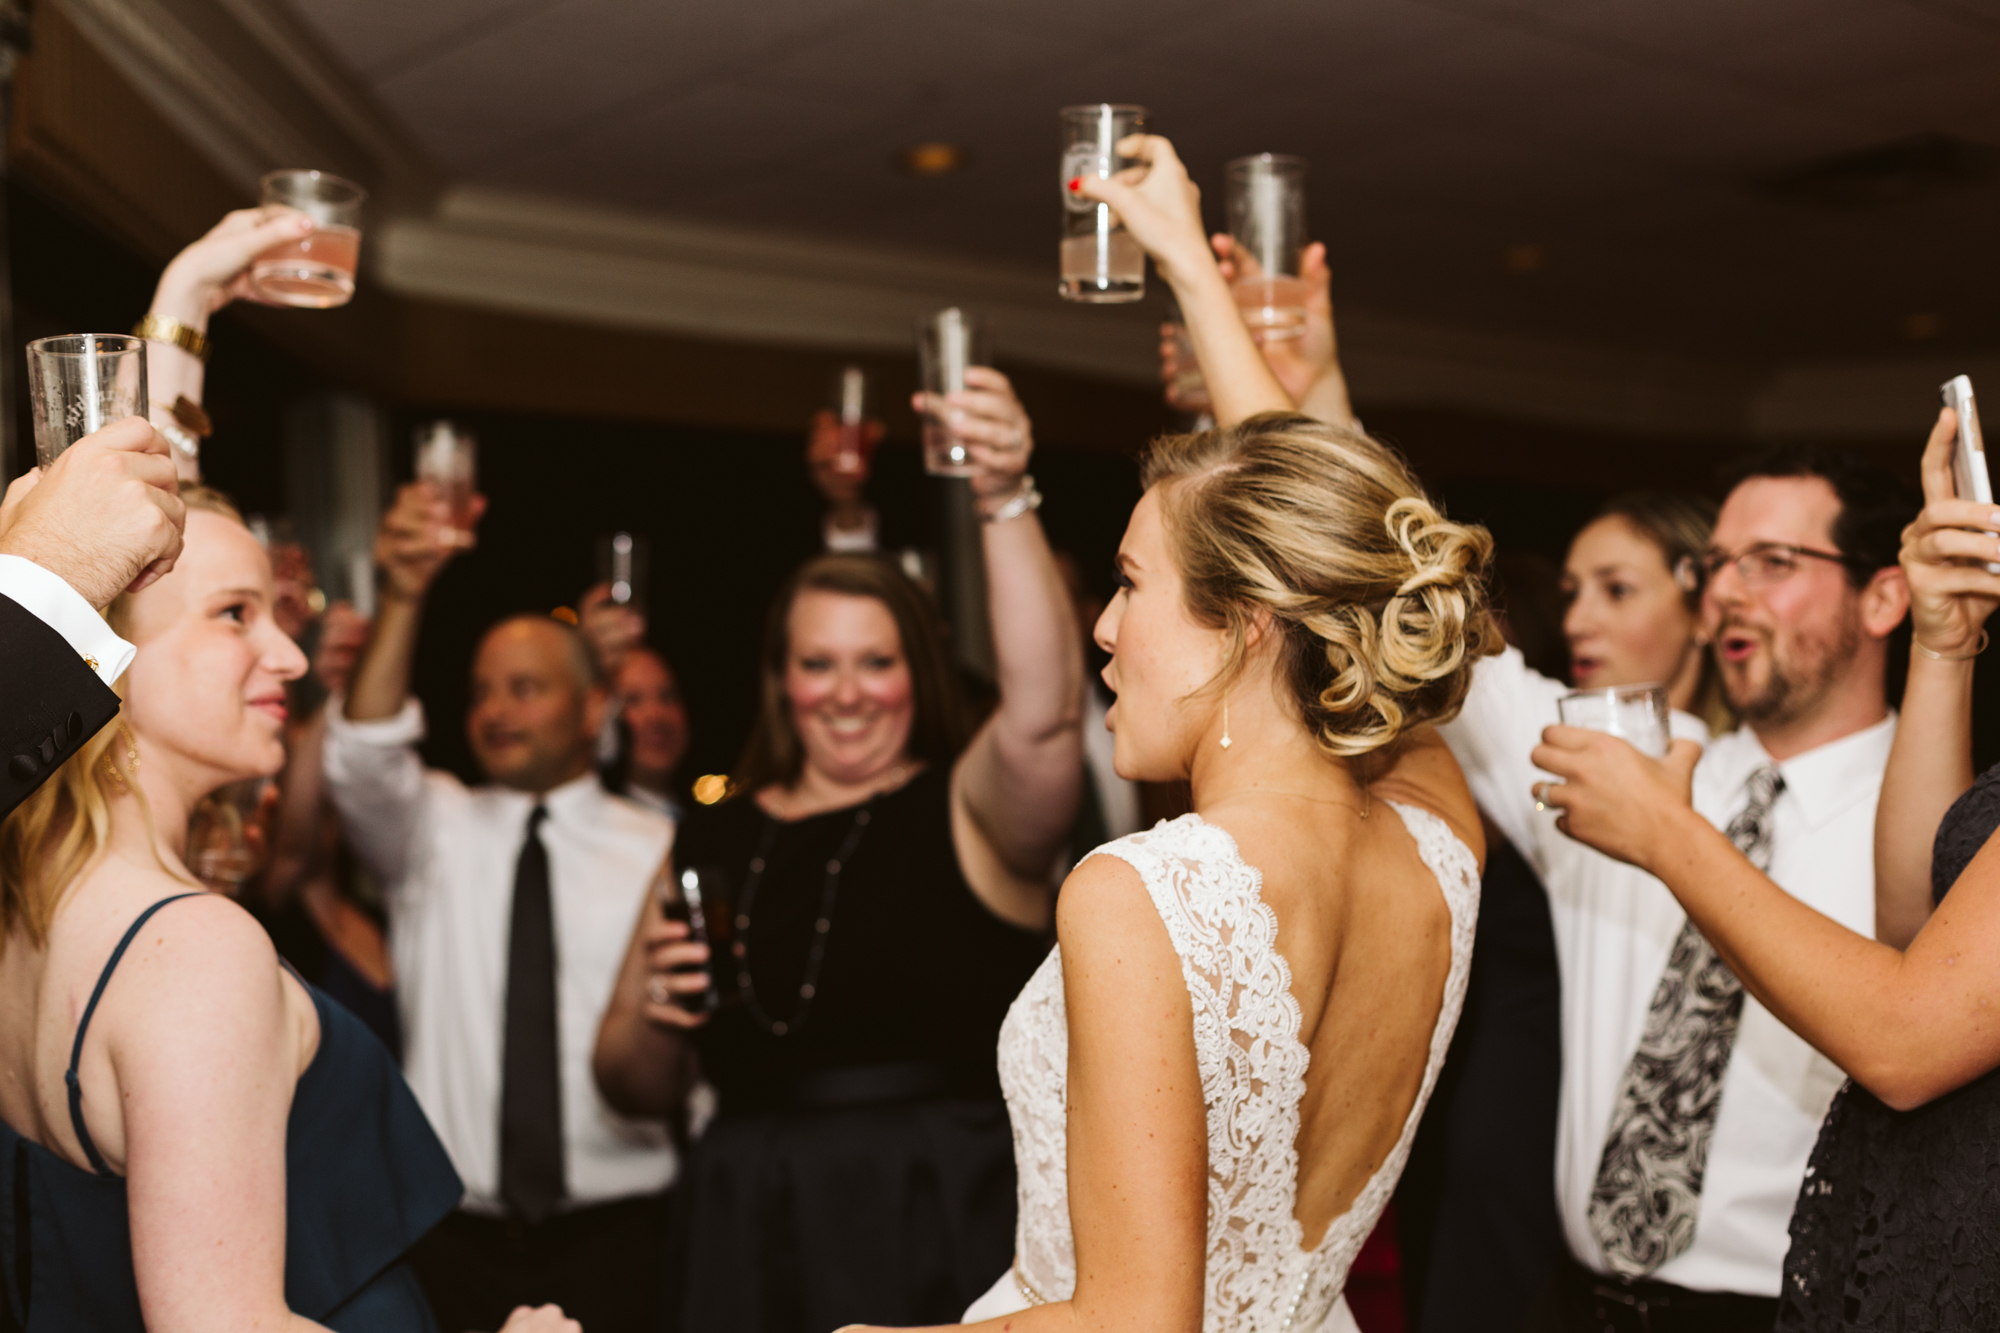 Elegant, Columbia Country Club, Chevy Chase Maryland, Baltimore Wedding Photographer, Classic, Traditional, Family Doing a Shot During Reception, Raising a Glass, Bride Toasting